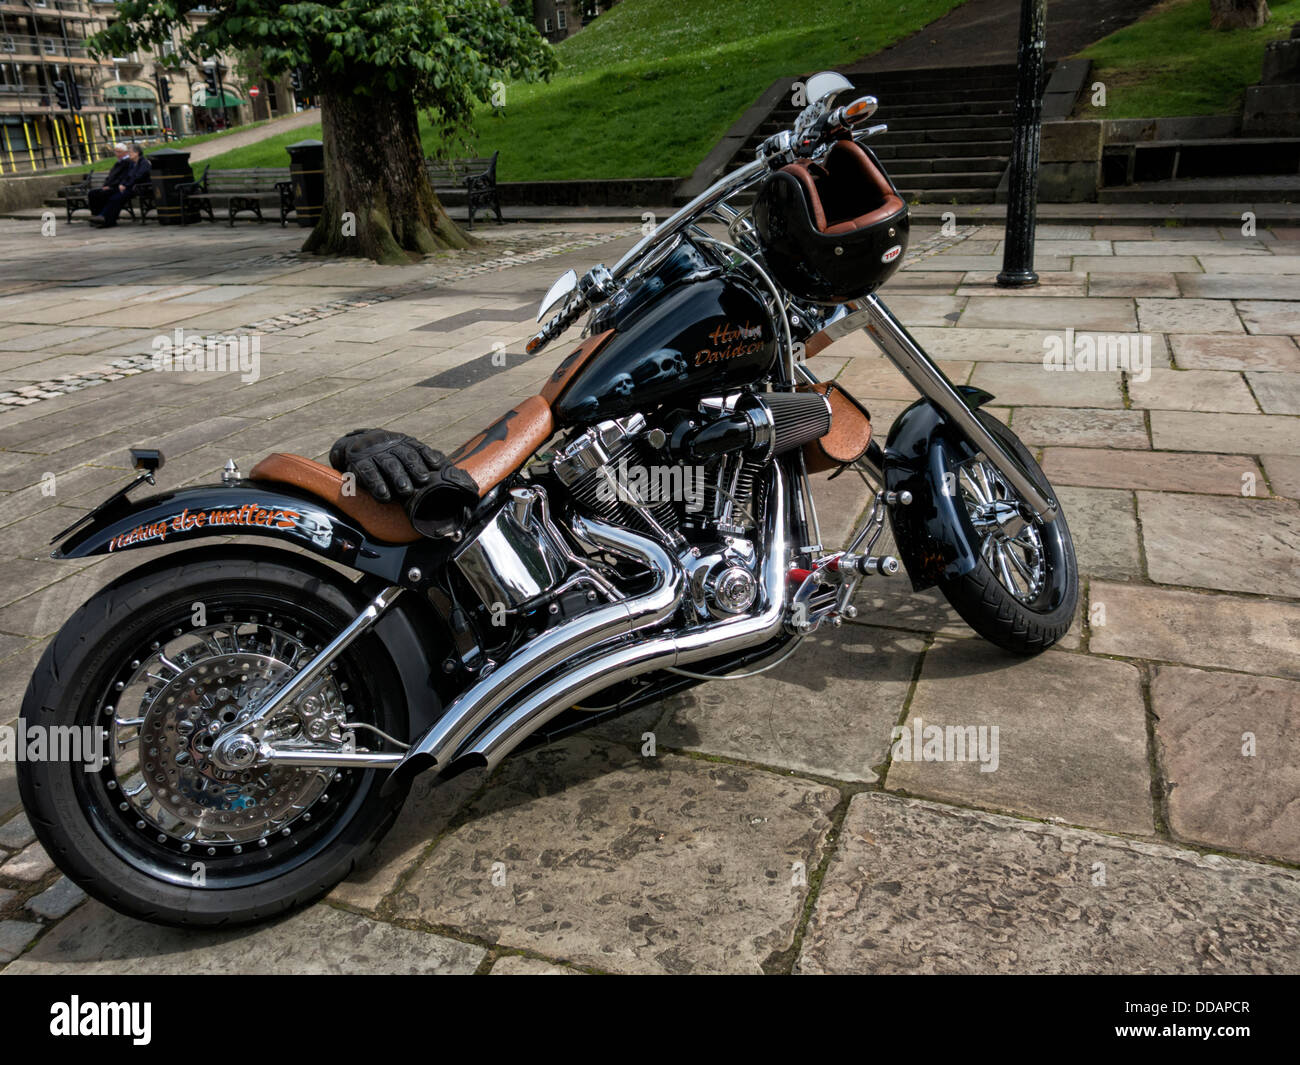 Custom motorbike parked on street in Buxton Derbyshire England - Stock Image